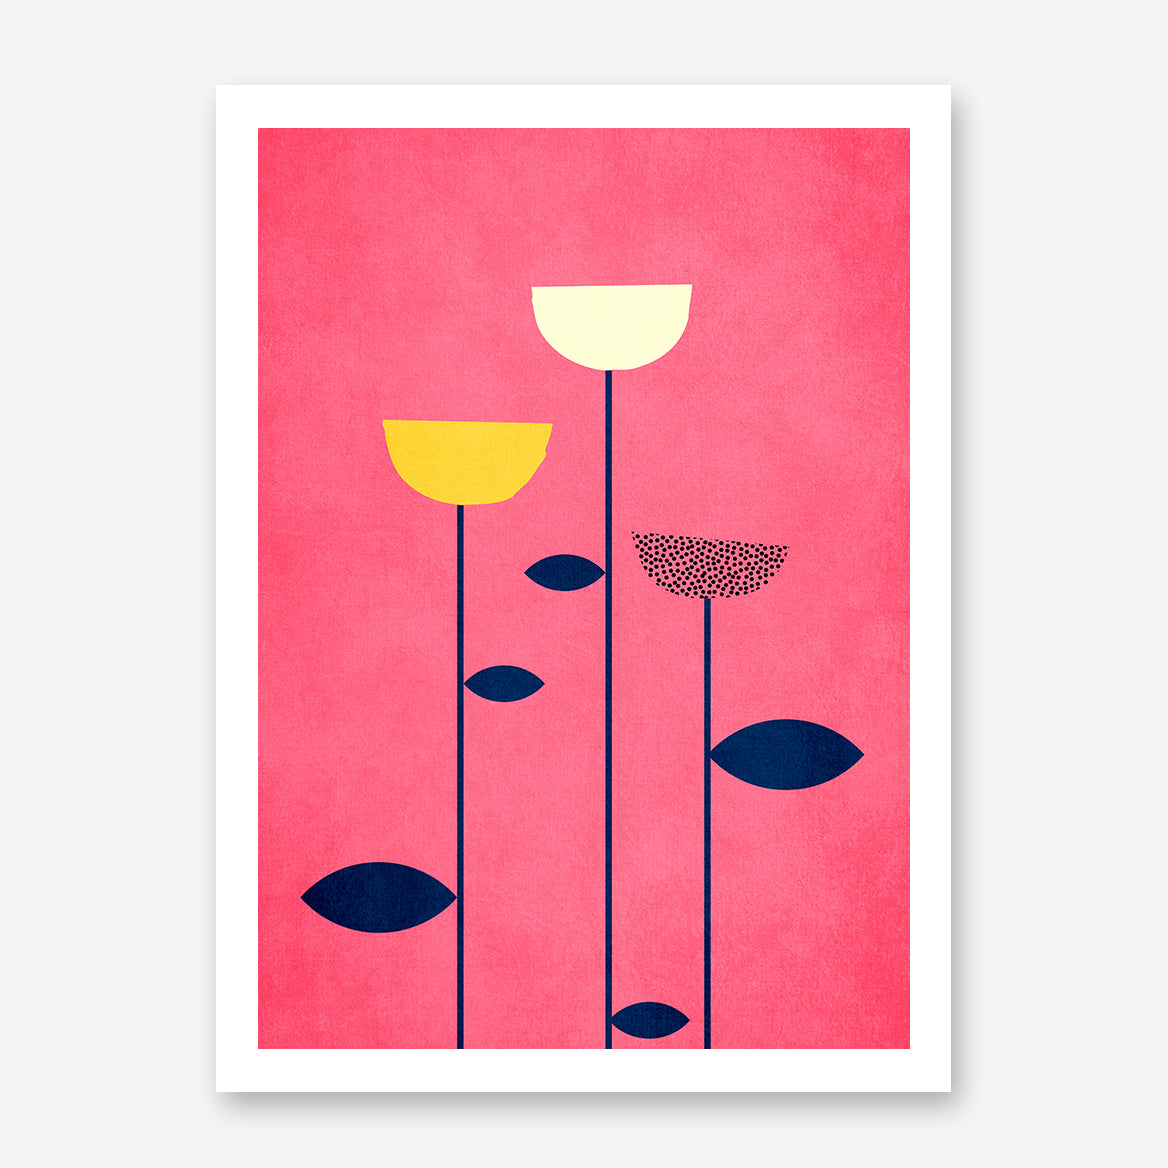 Poster print by Kubistika, with graphic flowers, on pink background.